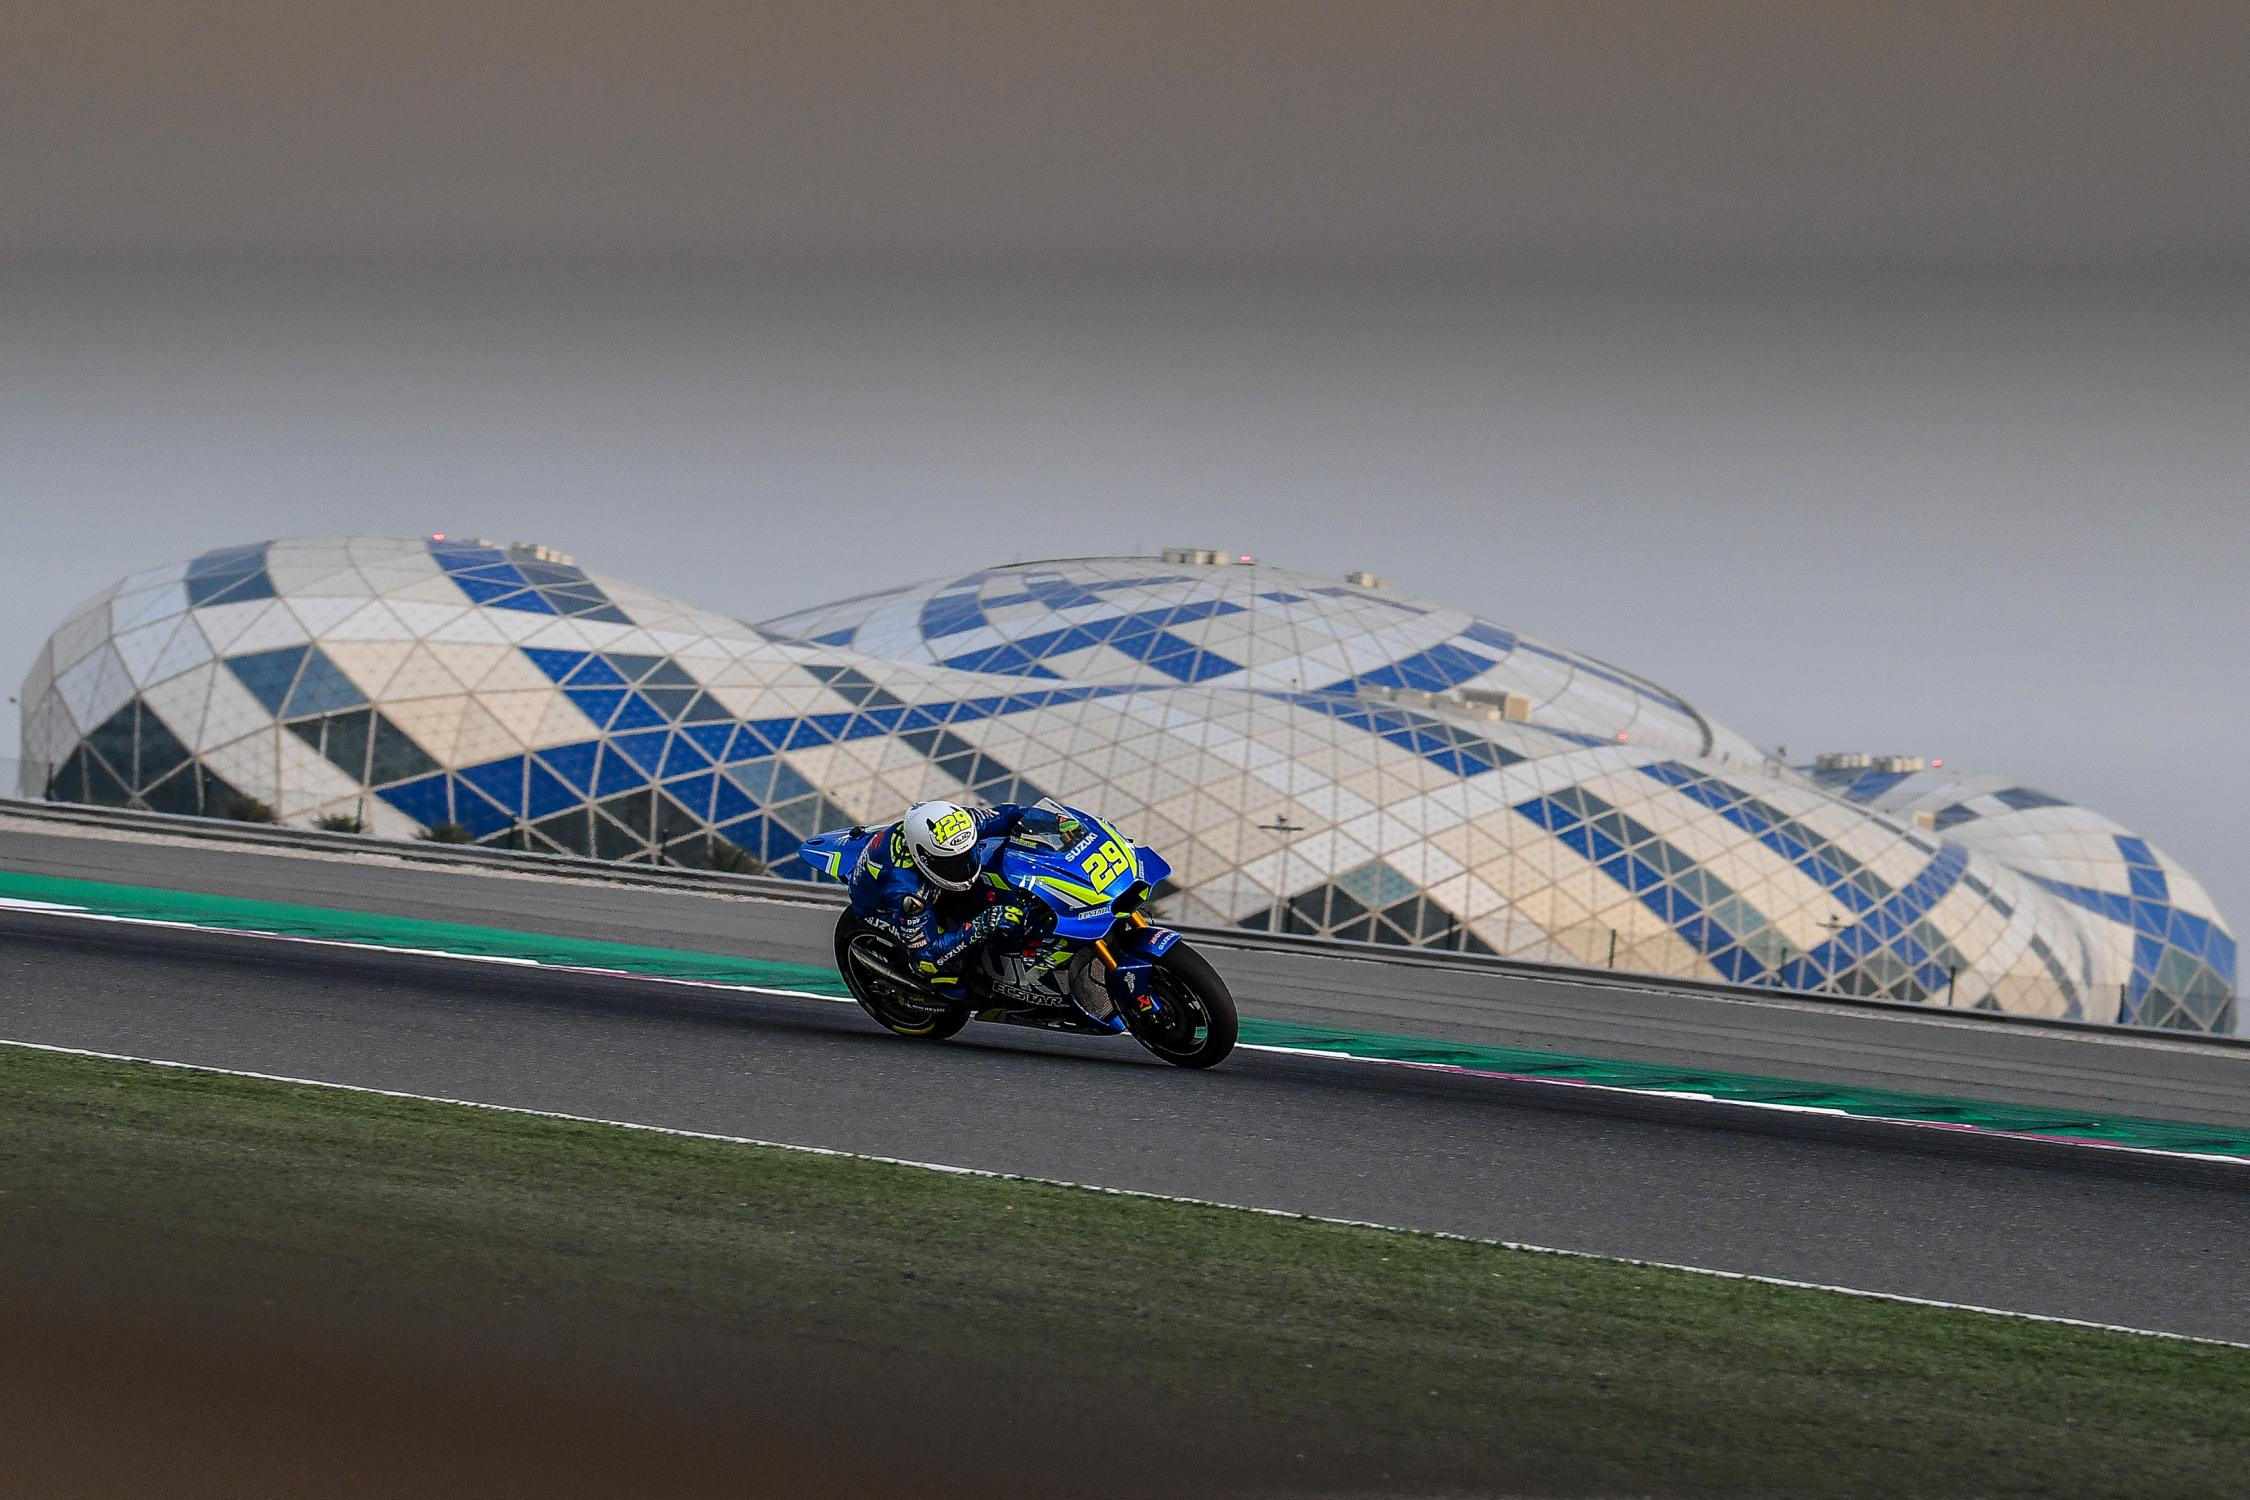 [Test] Losail 2018 29-andrea-iannone-italg5_3826.gallery_full_top_fullscreen